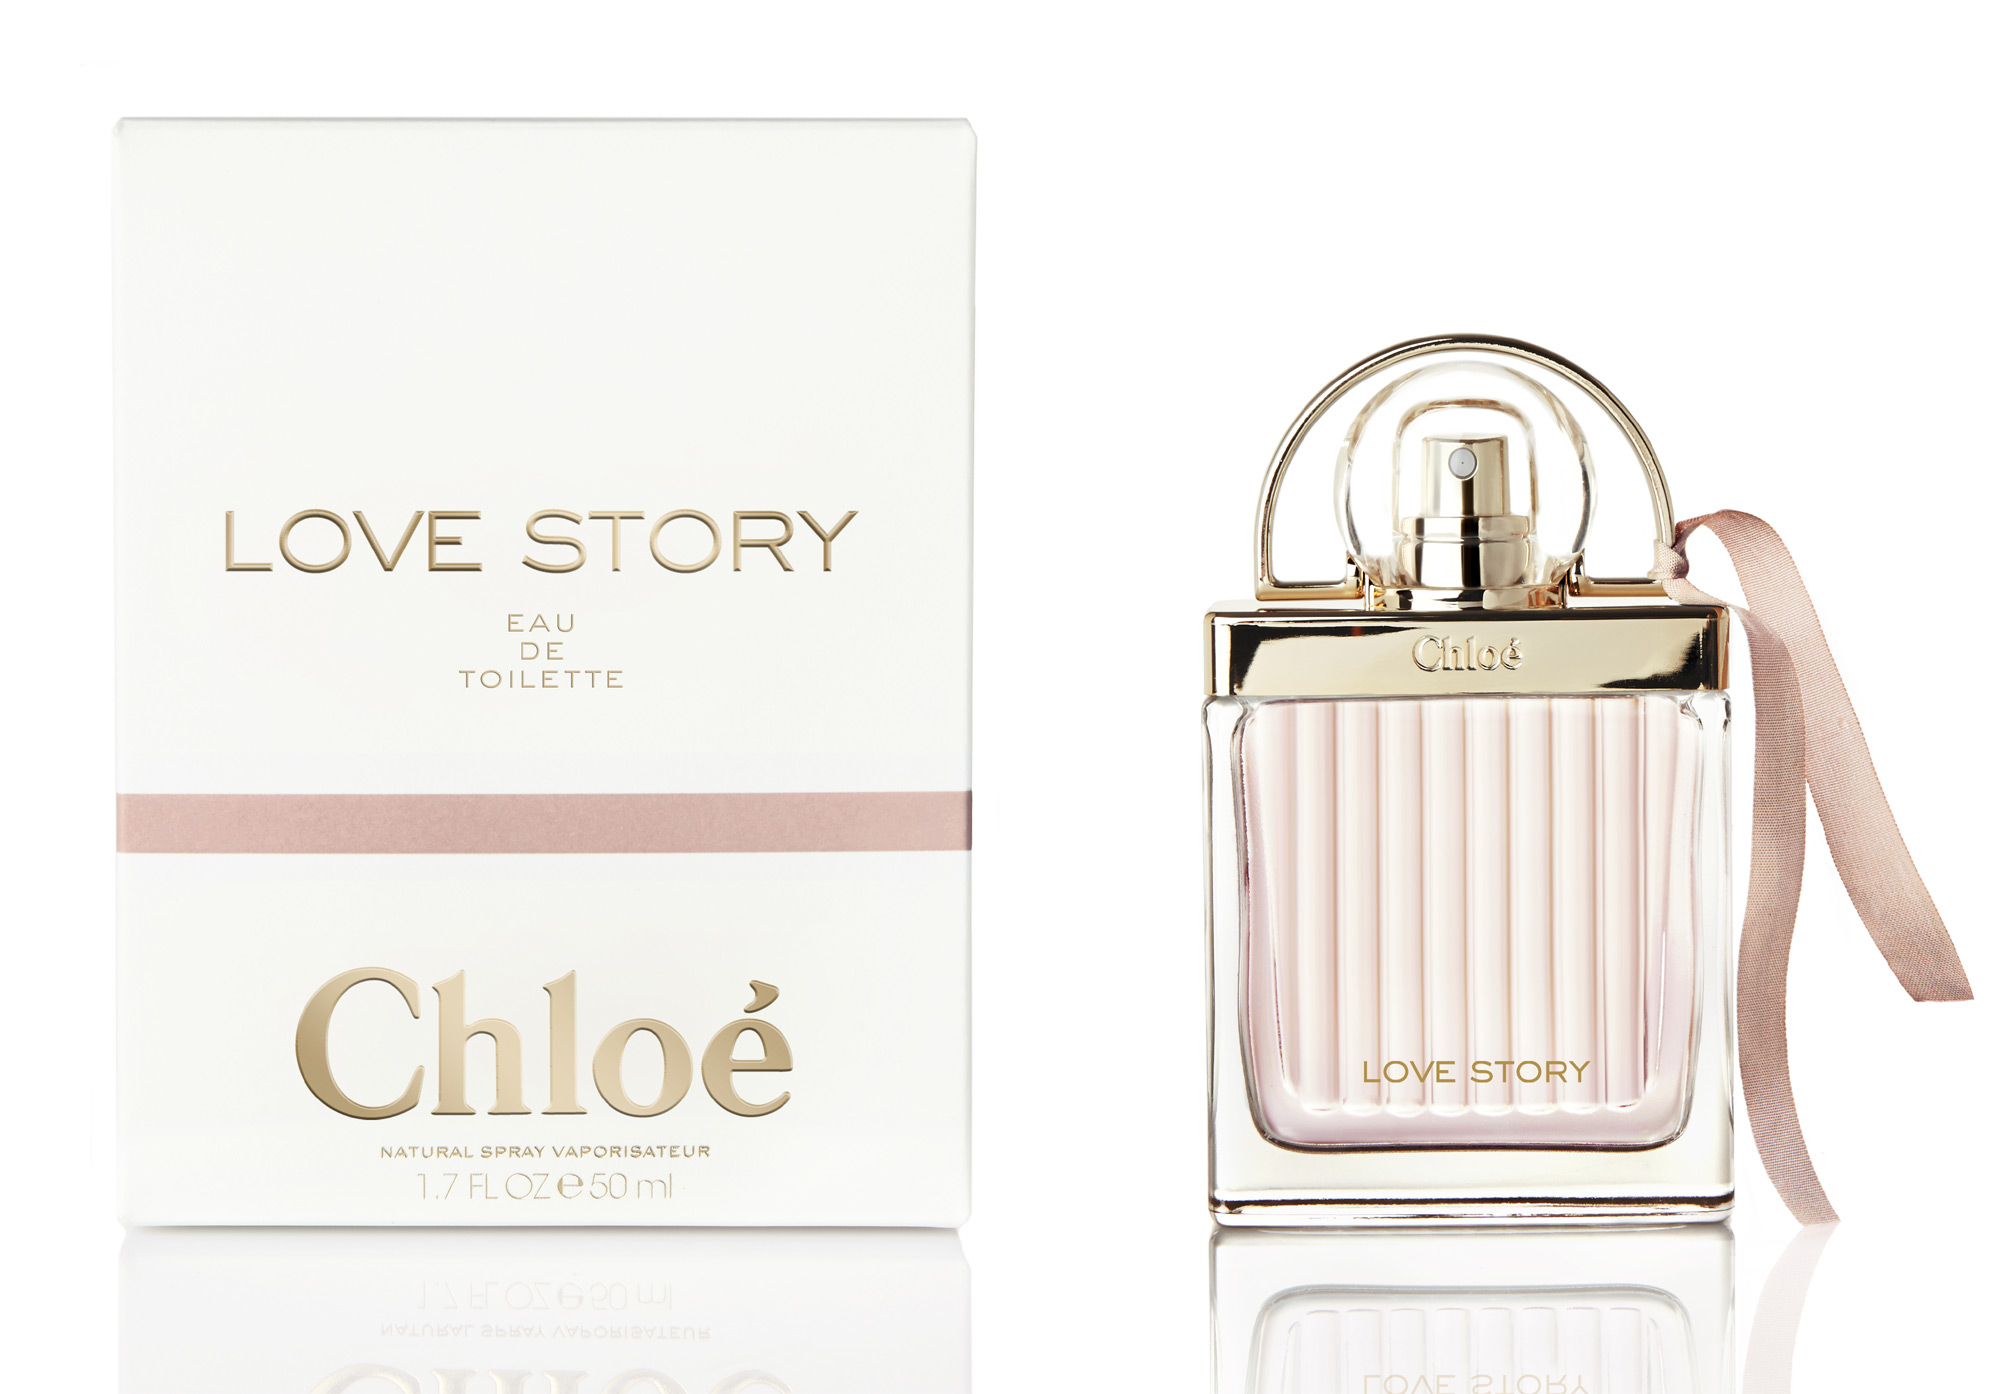 love story eau de toilette chloe parfum ein neues parfum. Black Bedroom Furniture Sets. Home Design Ideas